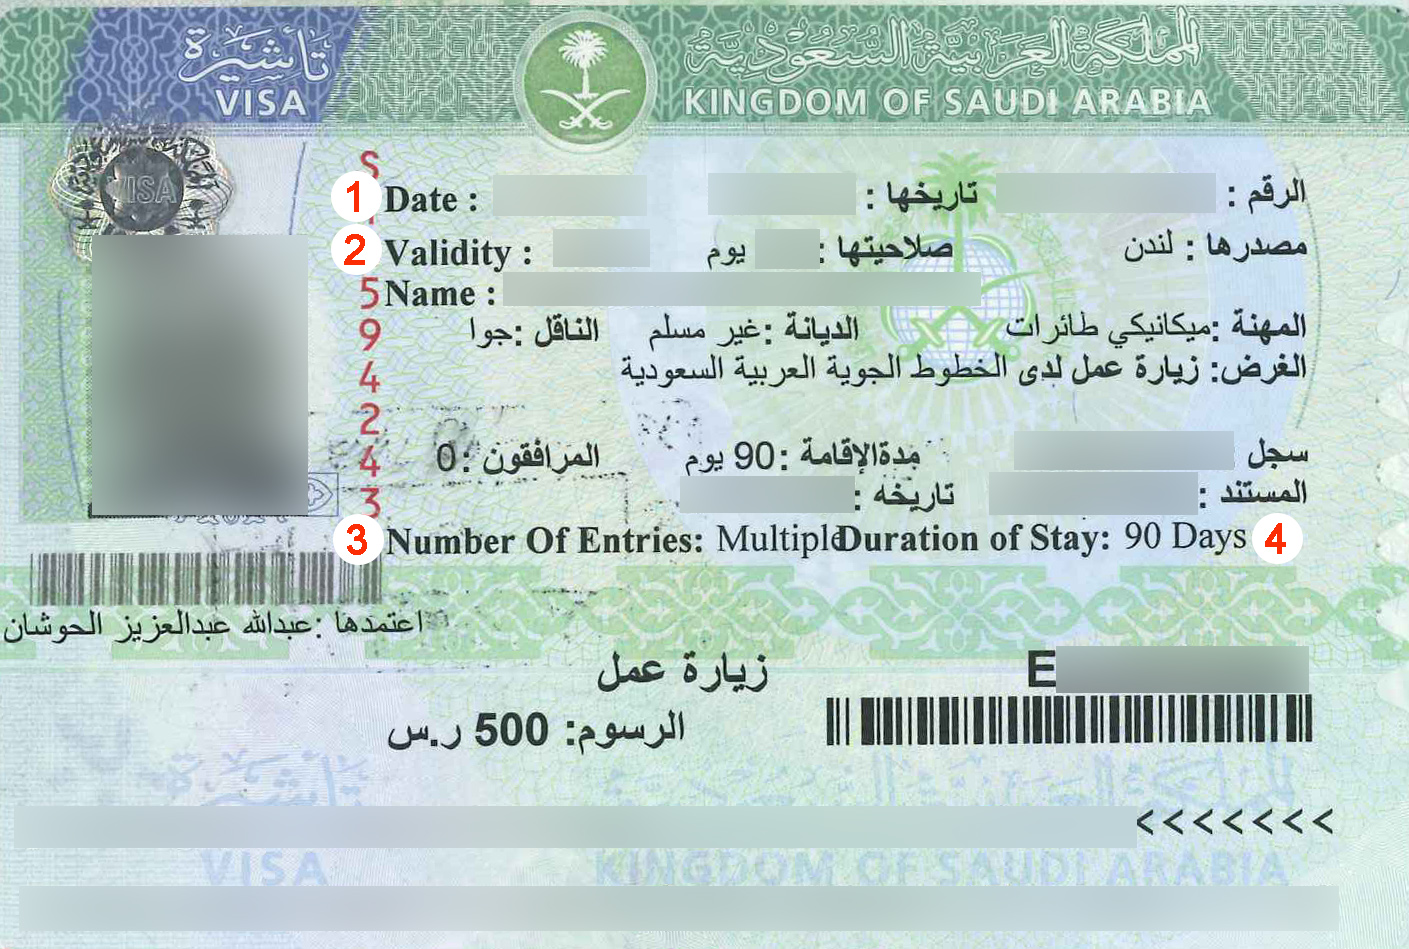 saudi uk relationship visa